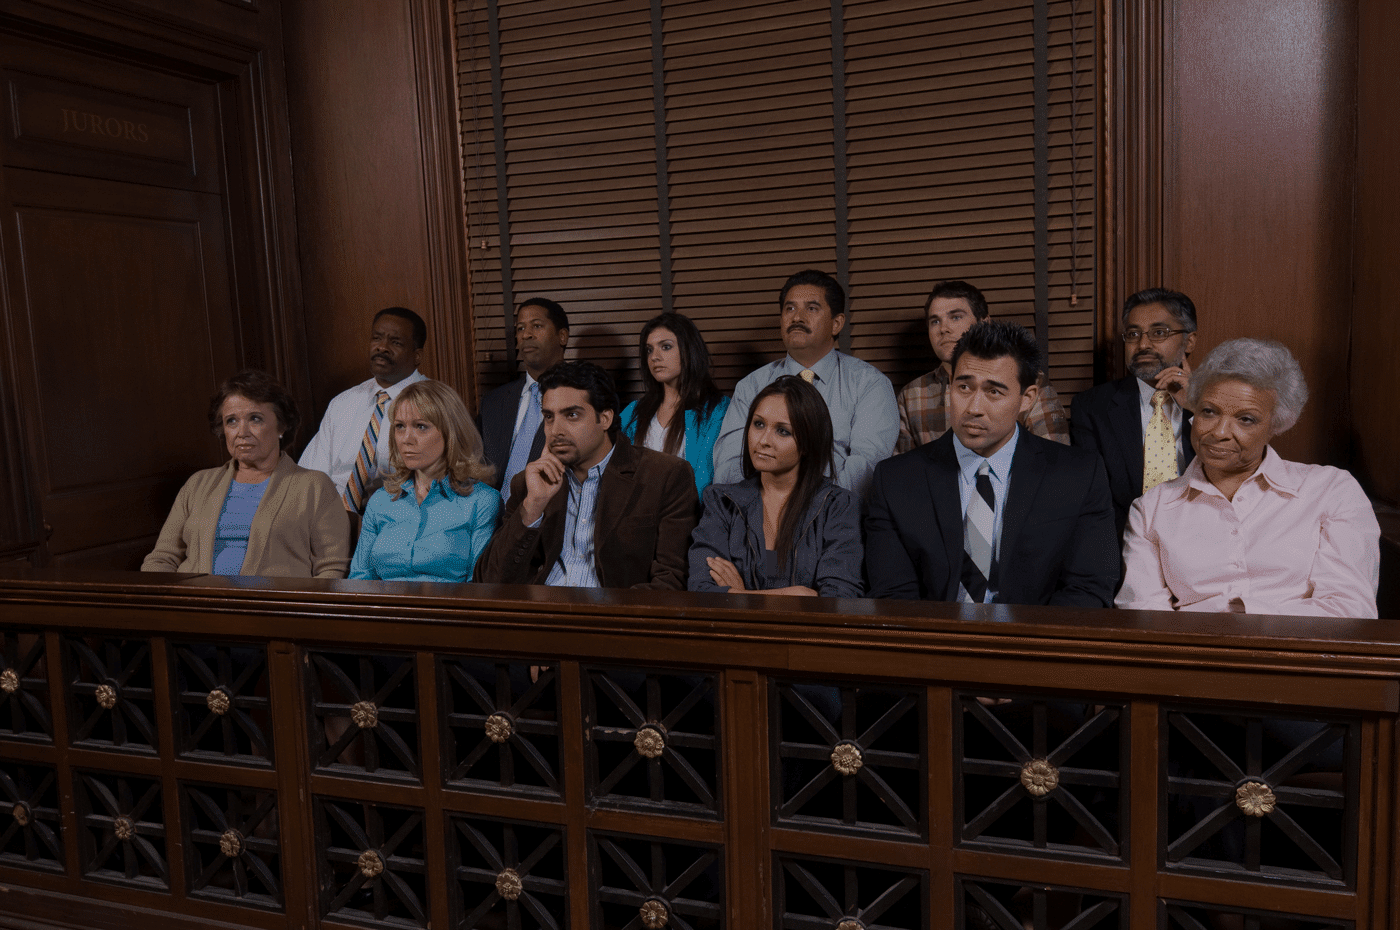 Court room jury box filled with jurors of a diverse mix